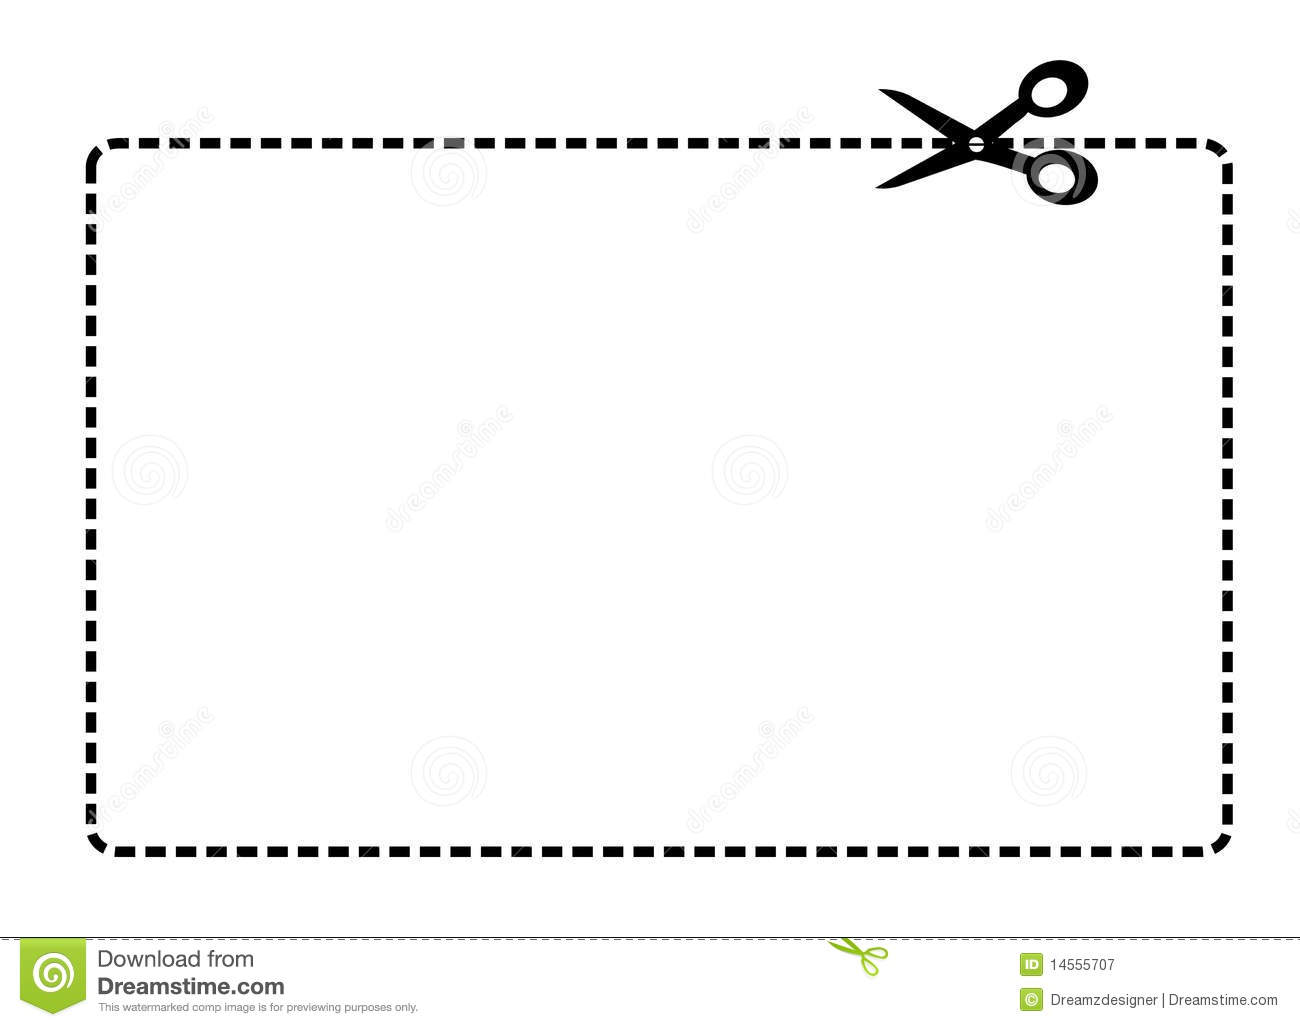 clipart coupon template - Clipground